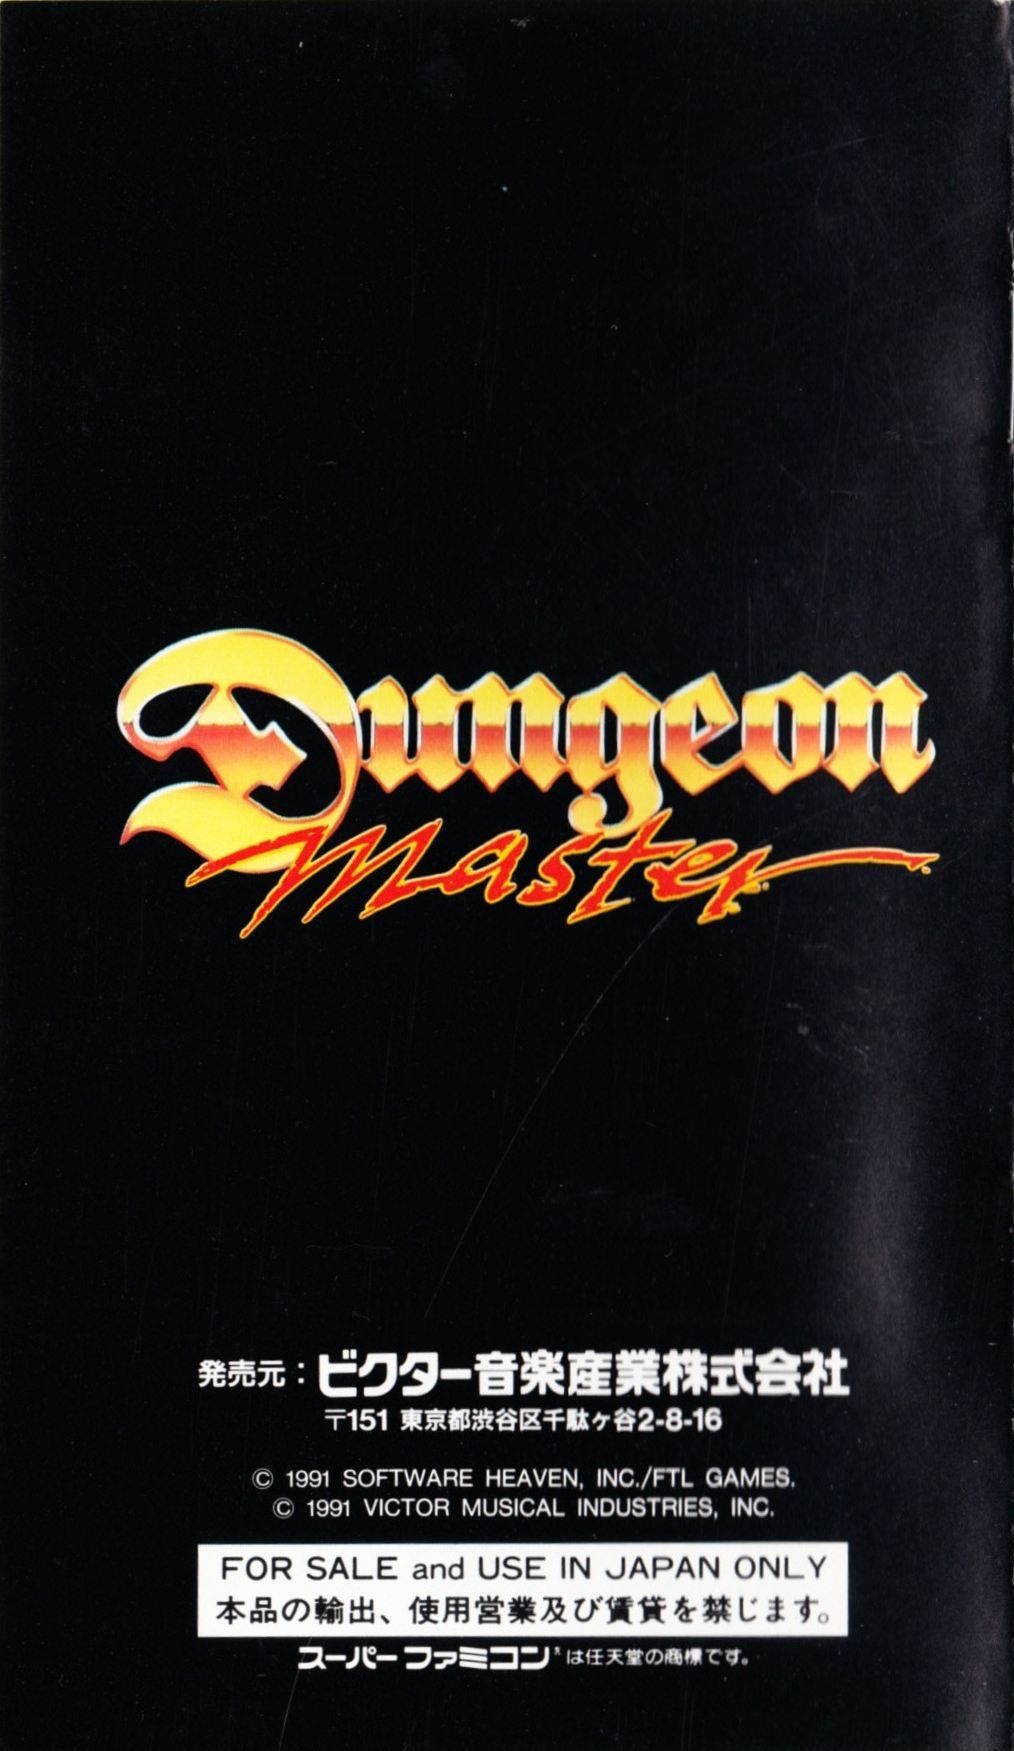 Game - Dungeon Master - JP - Super Famicom - Manual - Page 048 - Scan